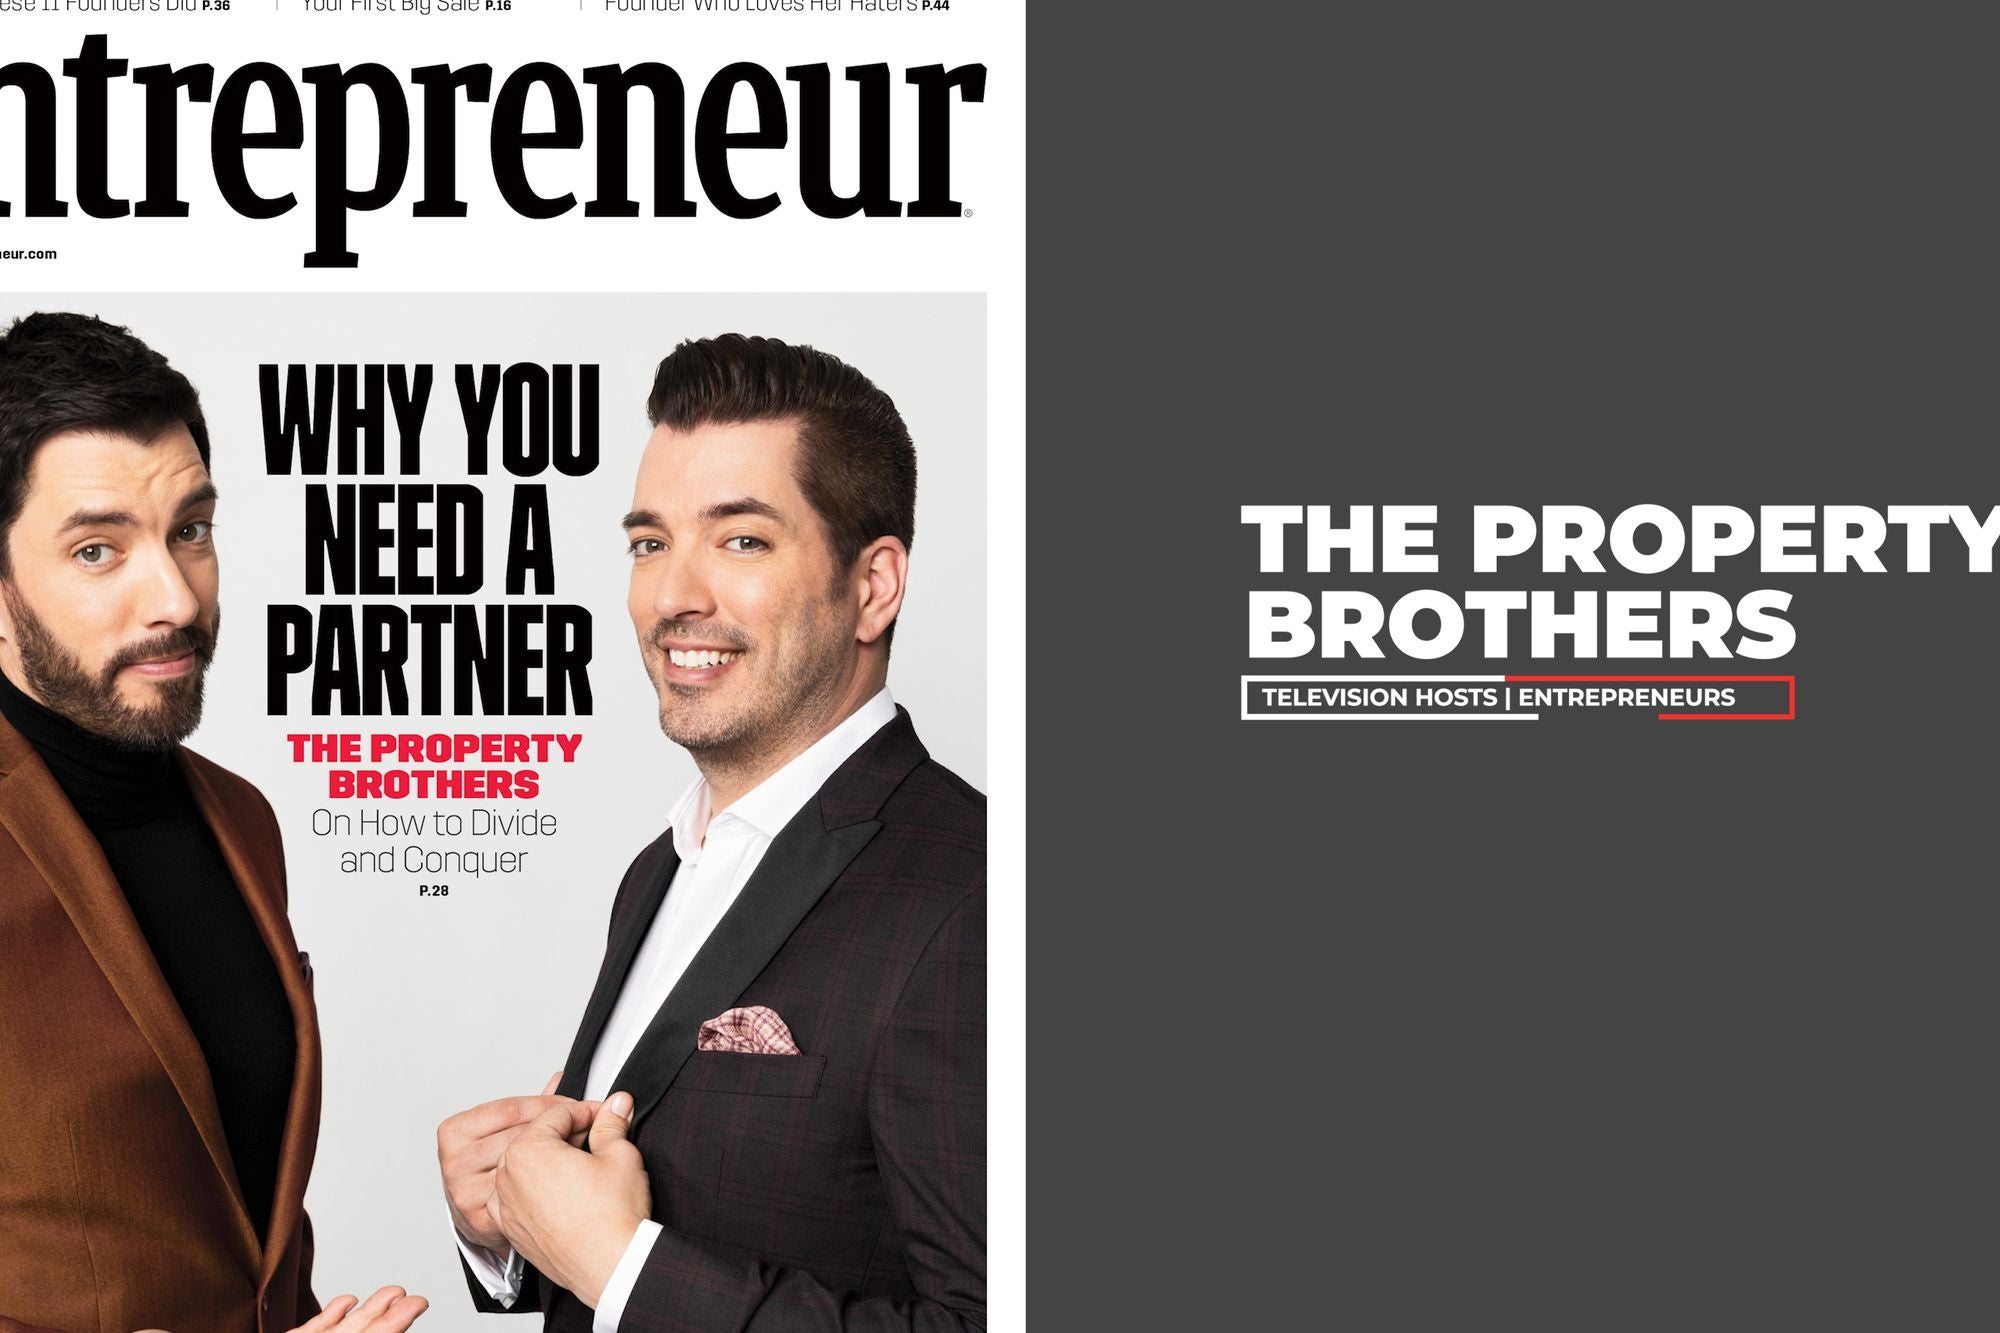 The Value Of Failing >> The Property Brothers Talk Entrepreneurship Risk Taking And The